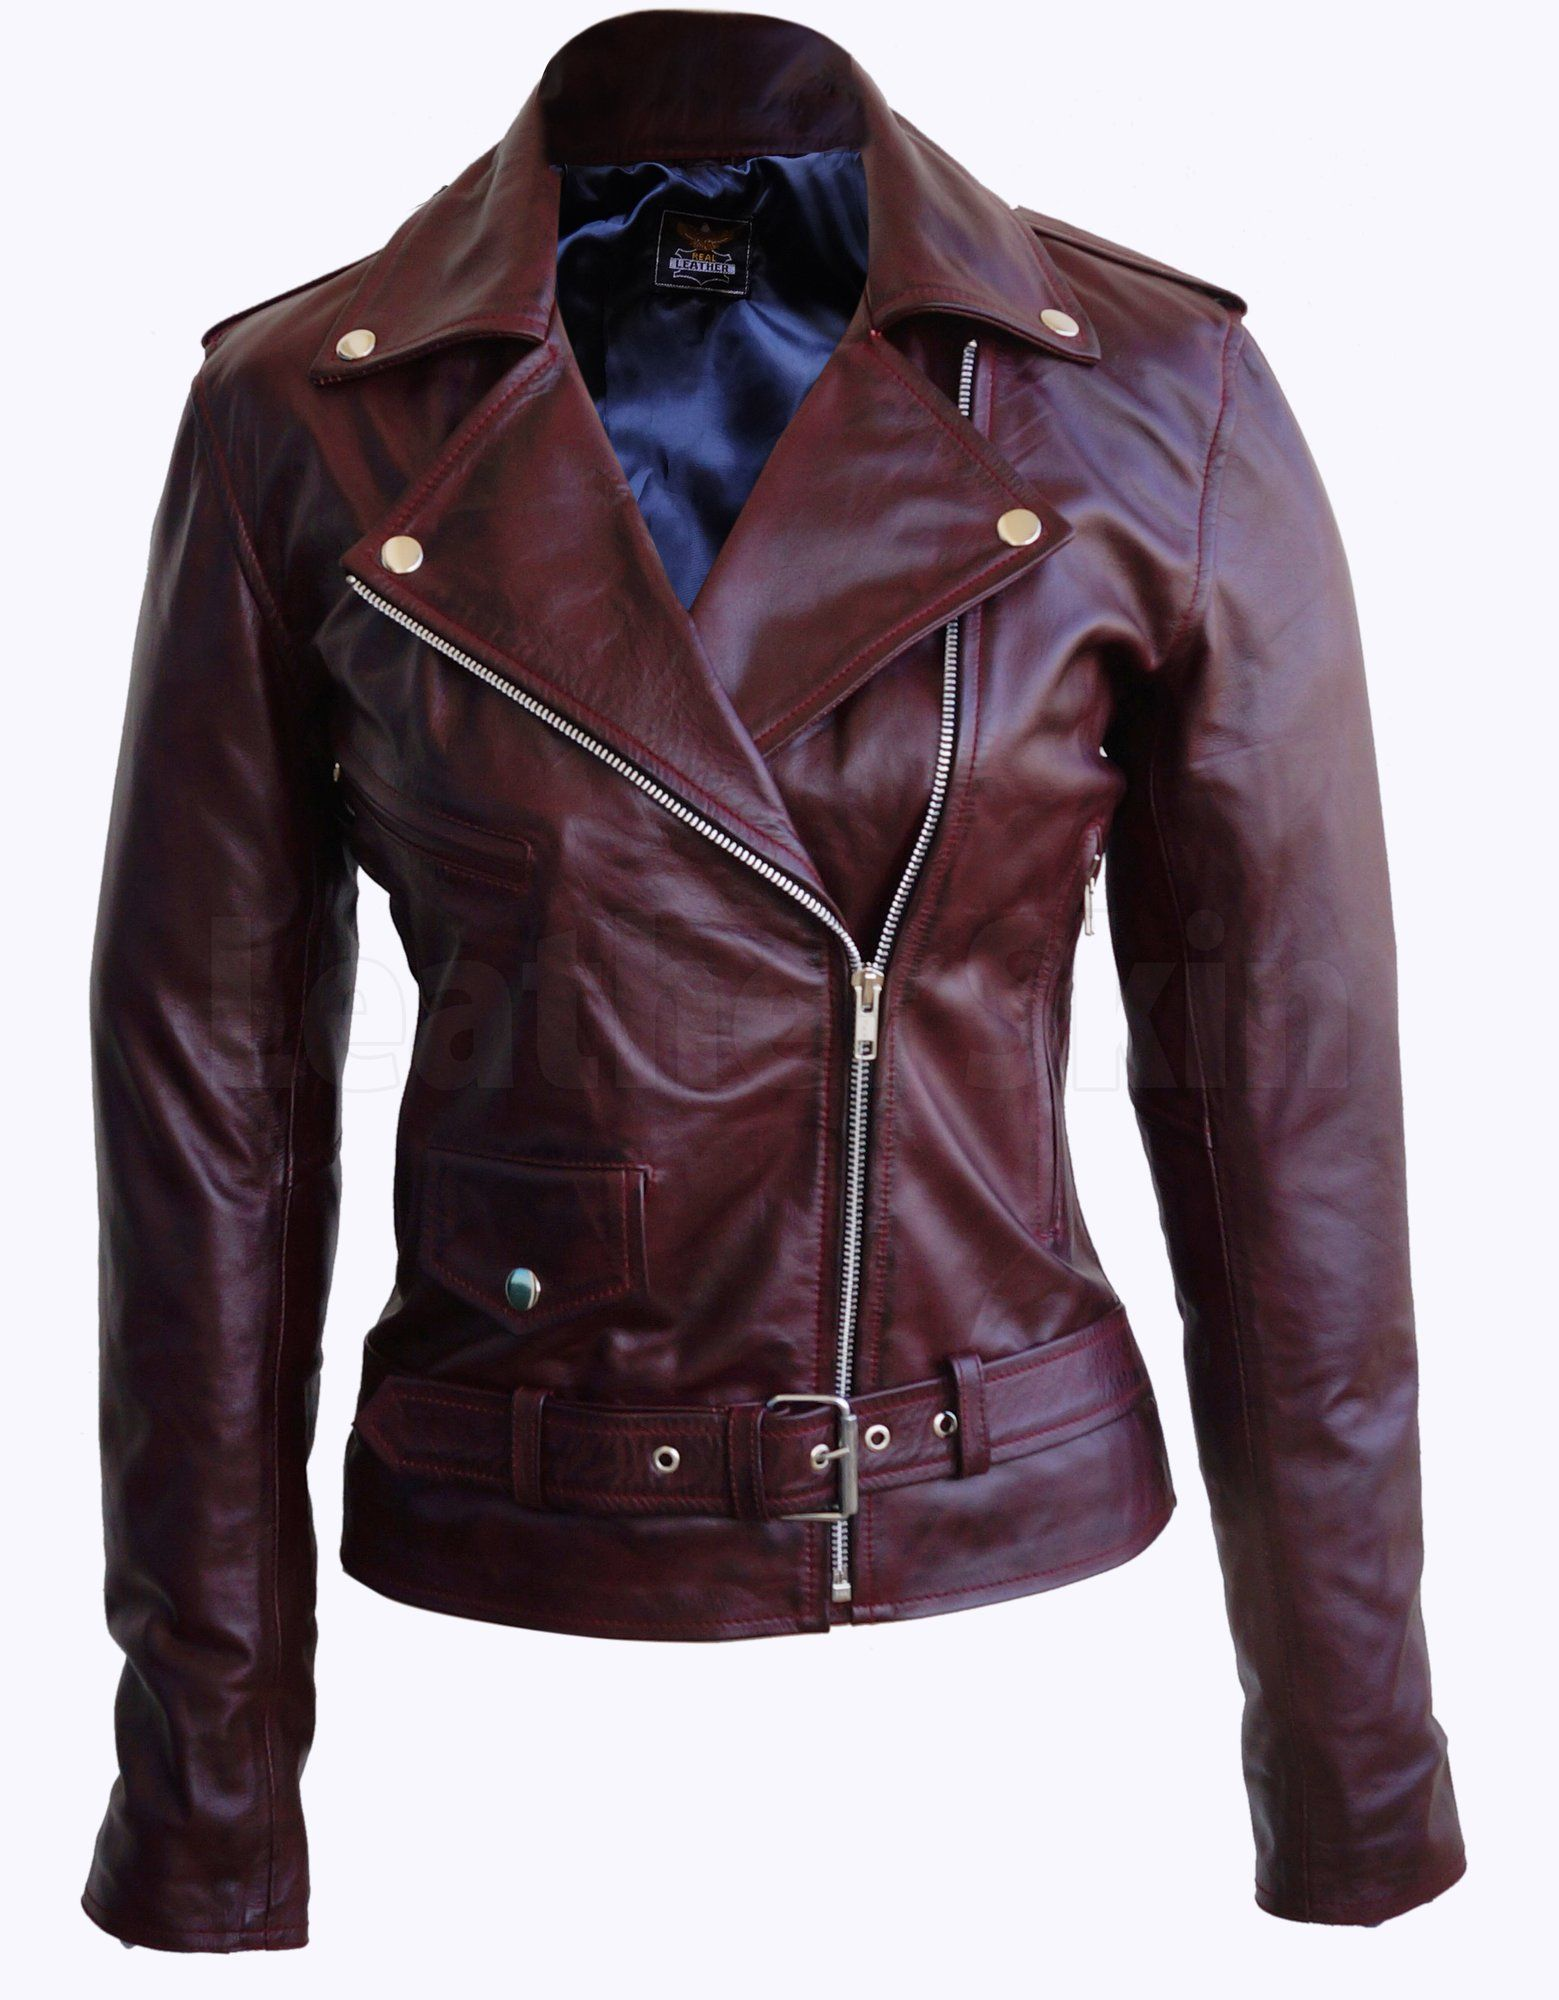 Women Distressed Red Brando Belted Sheep Leather Jacket With Epaulettes Leather Jackets Women Leather Jacket Celebrities Leather Jacket [ 2000 x 1559 Pixel ]